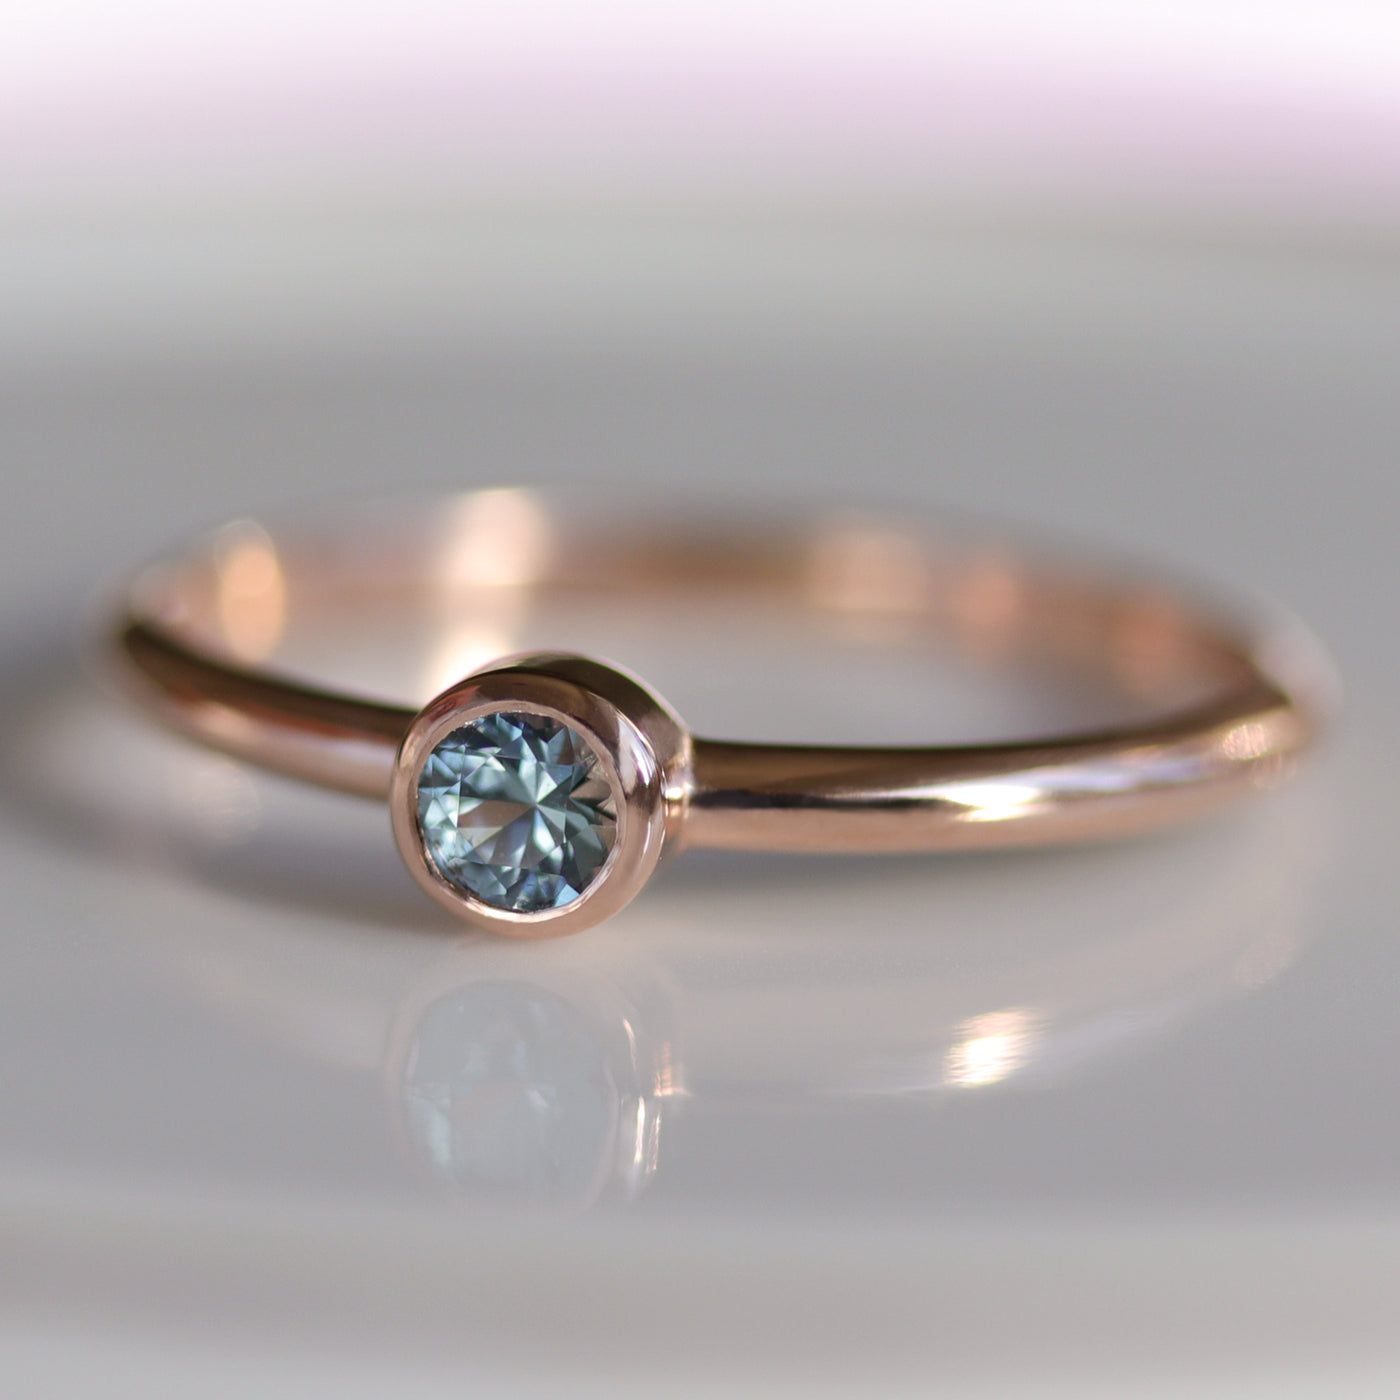 Malawi Sapphire Solitaire Engagement Ring